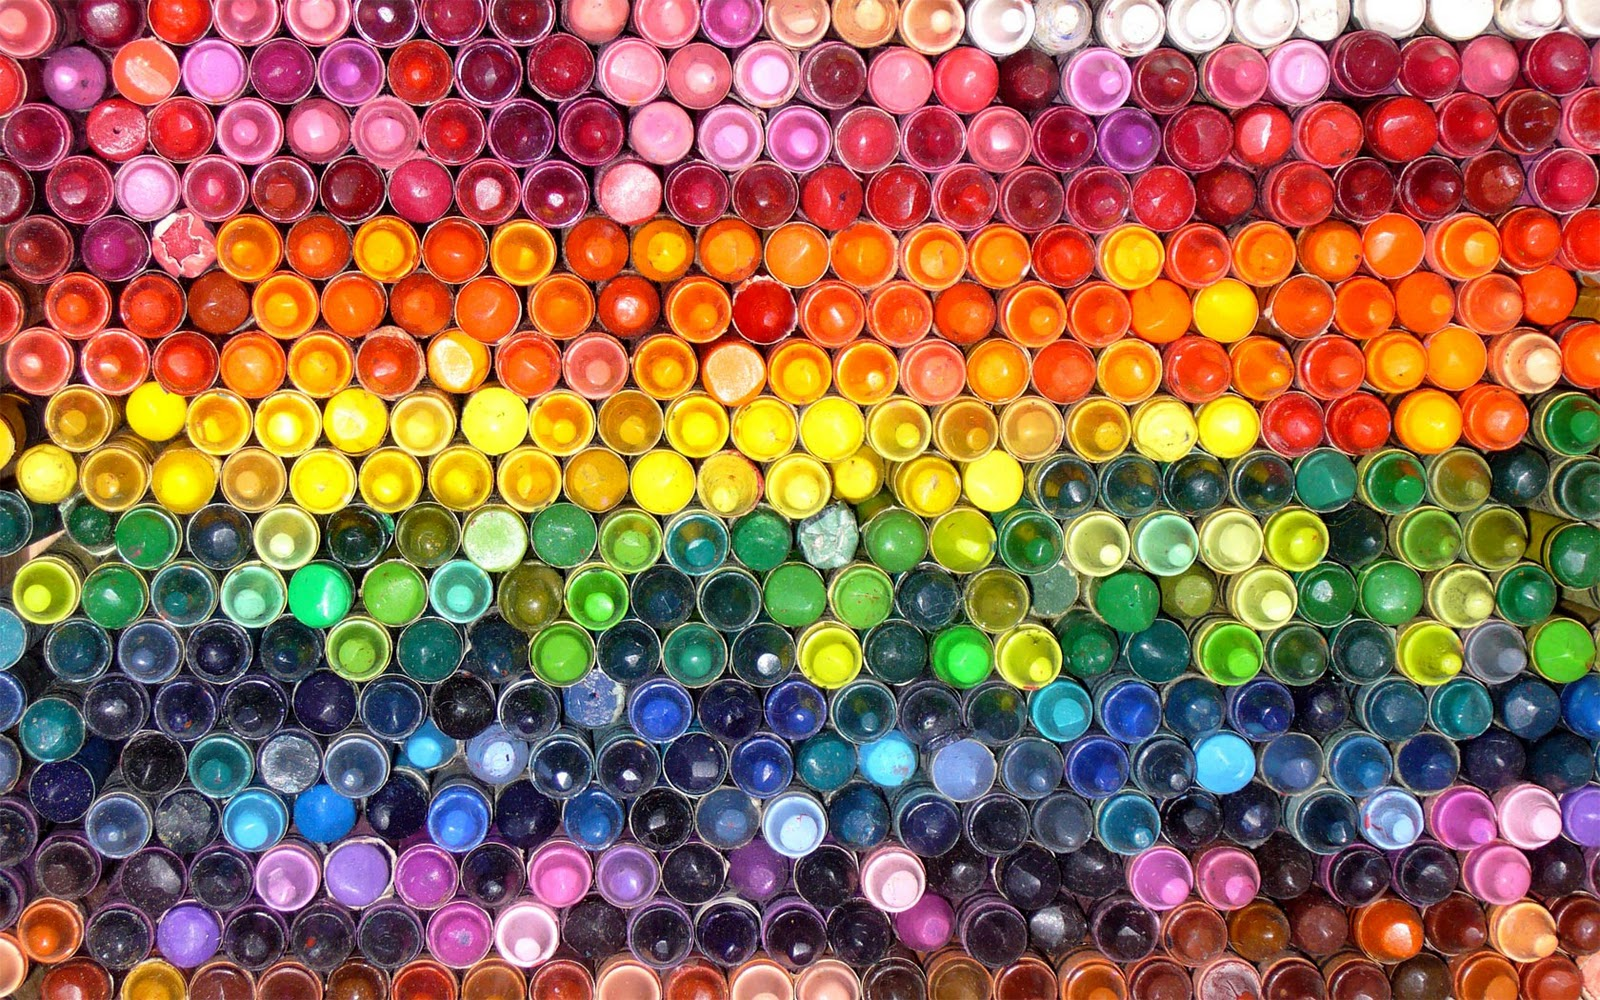 Hd colorful wallpapers - Colorful background hd ...